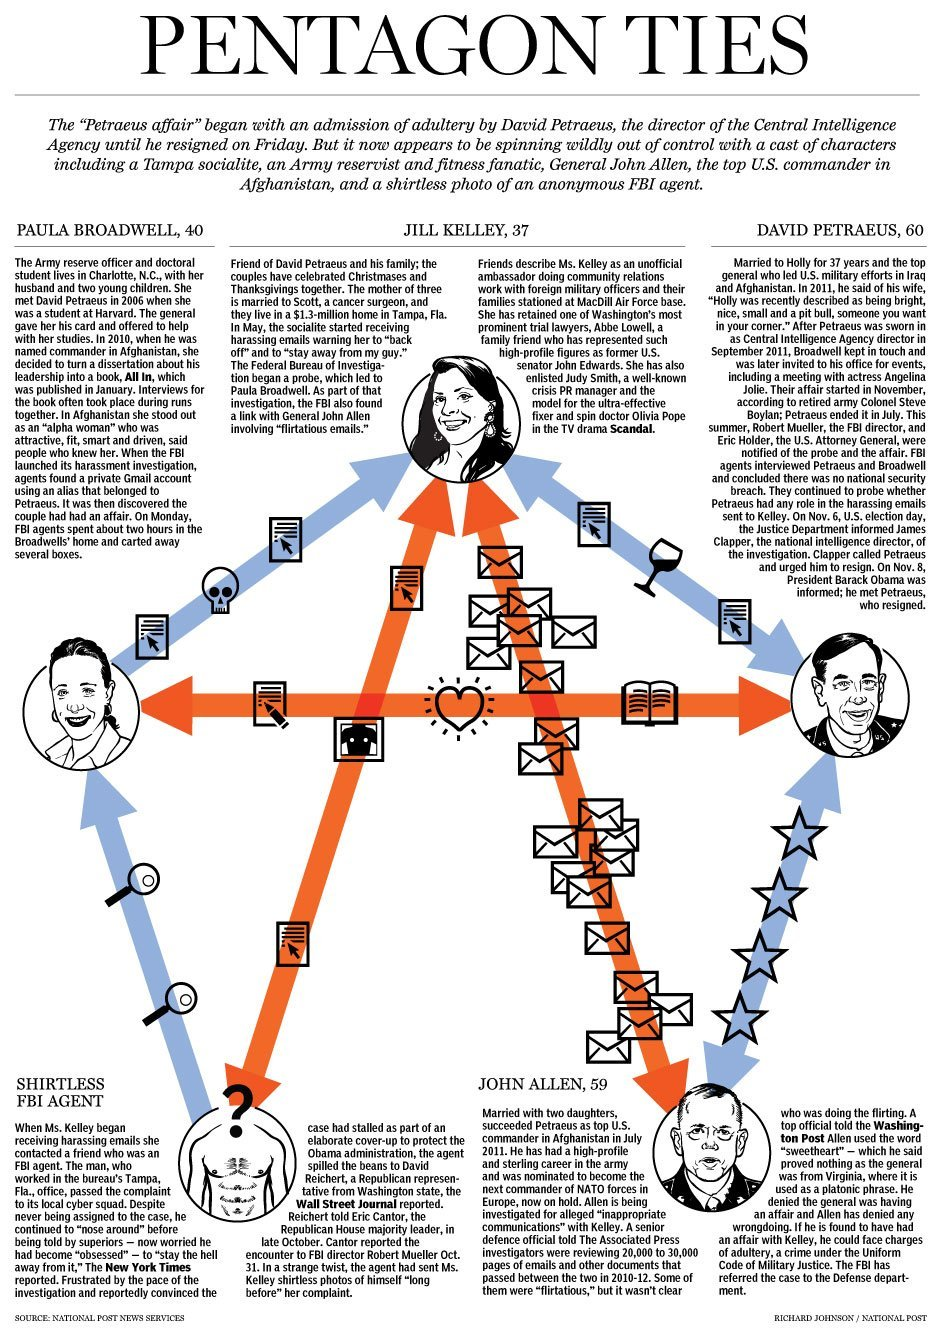 Graphic: Petraeus, Kelley, Broadwell, Allen and the FBI guy with no shirt